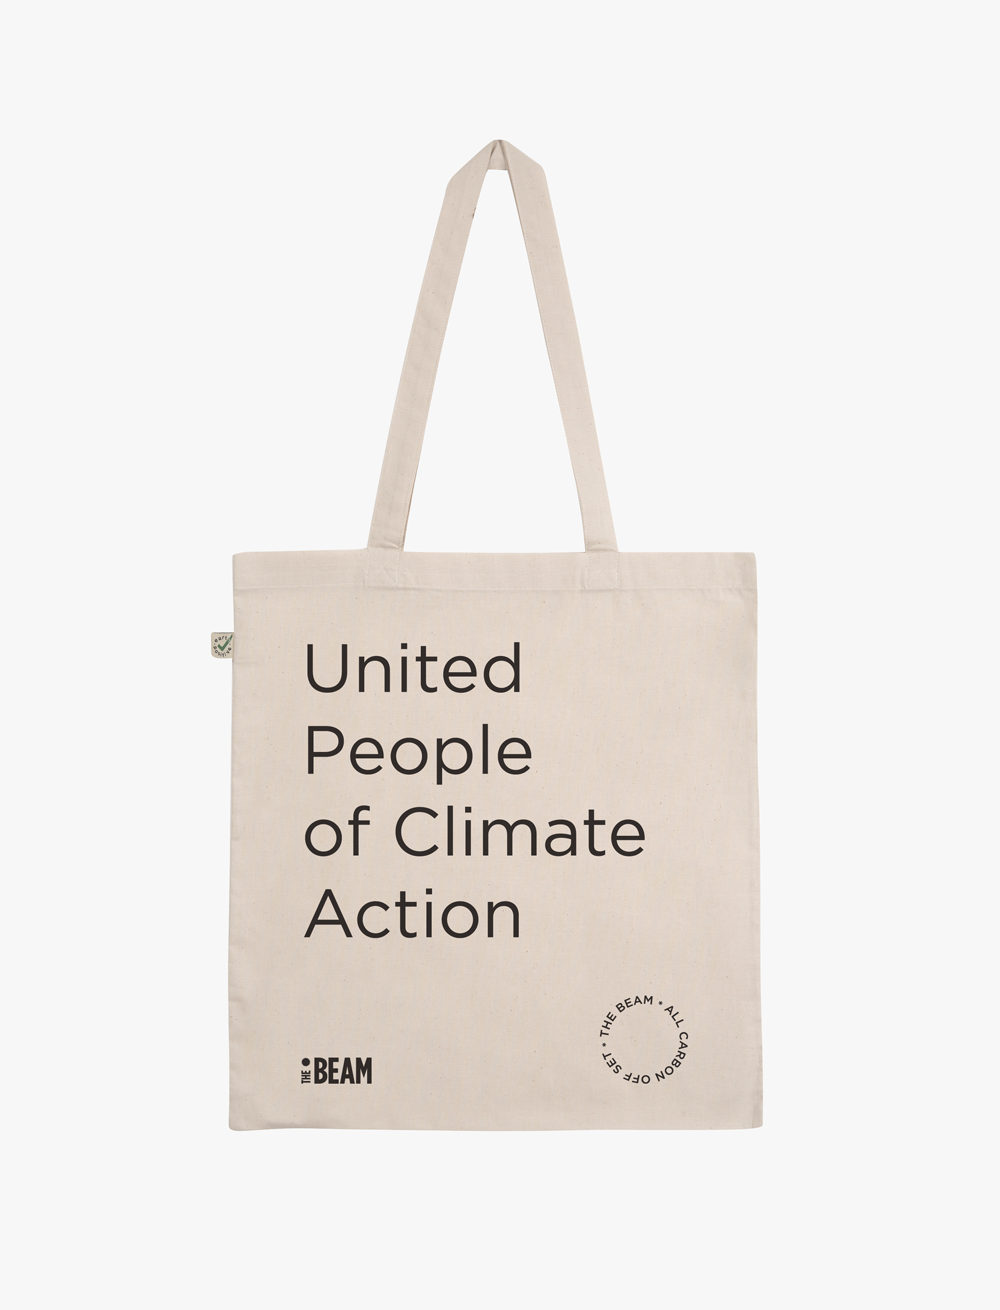 The Beam Tote Bag